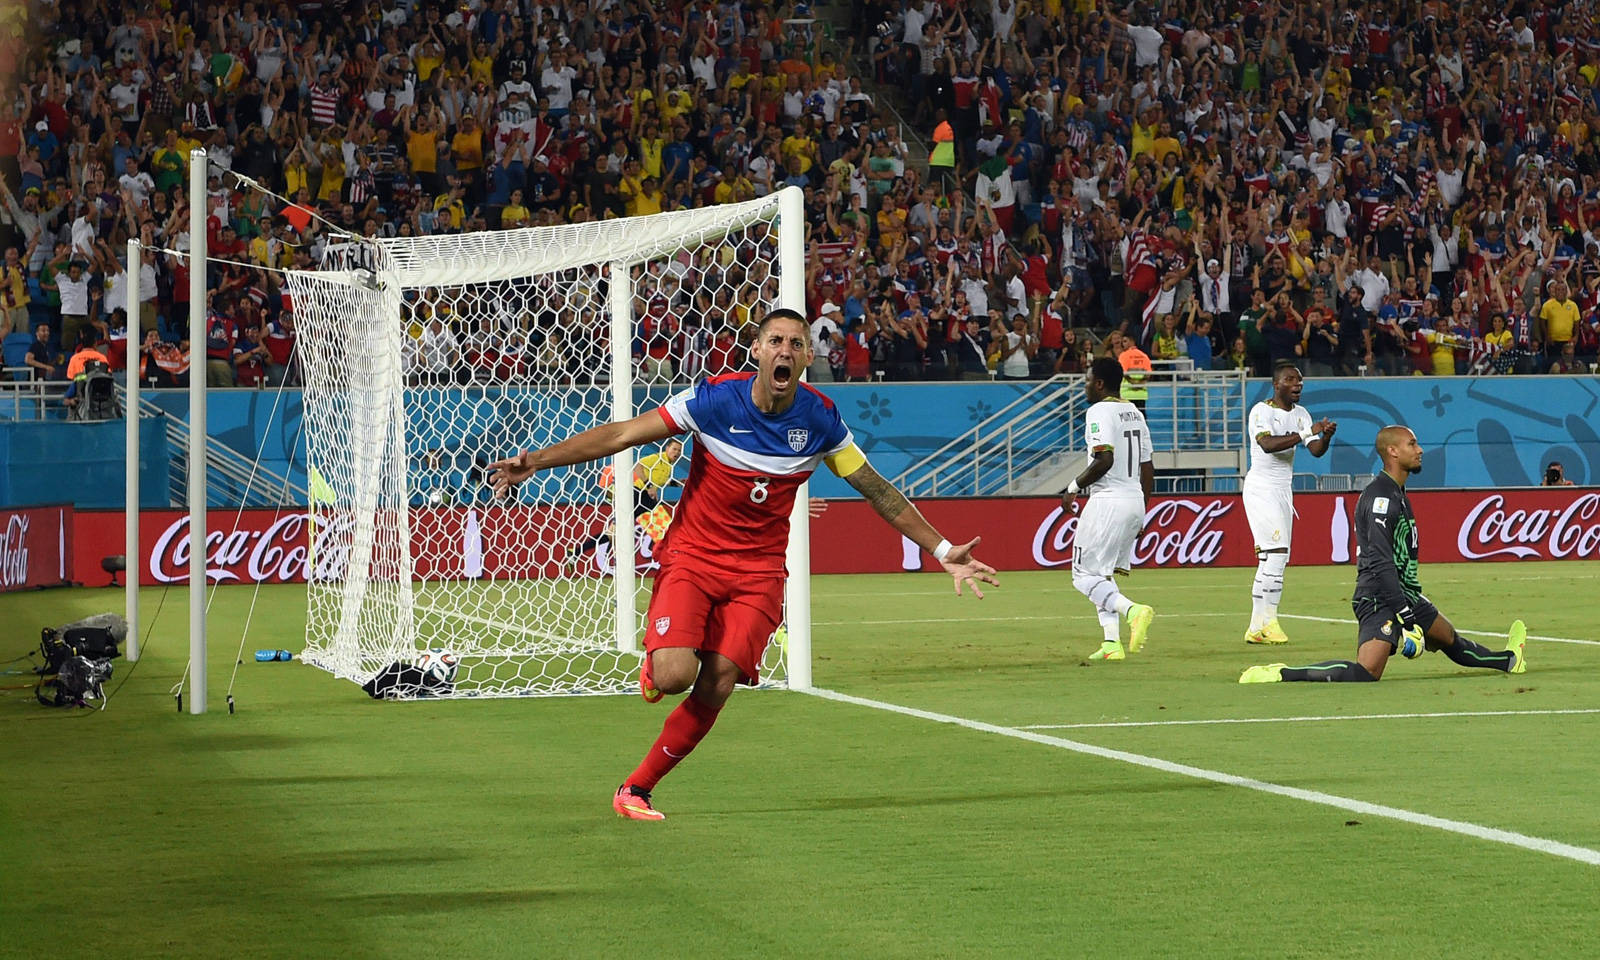 Clint Dempsey scores in the opening minute of the USA's 2014 World Cup opener against Ghana.